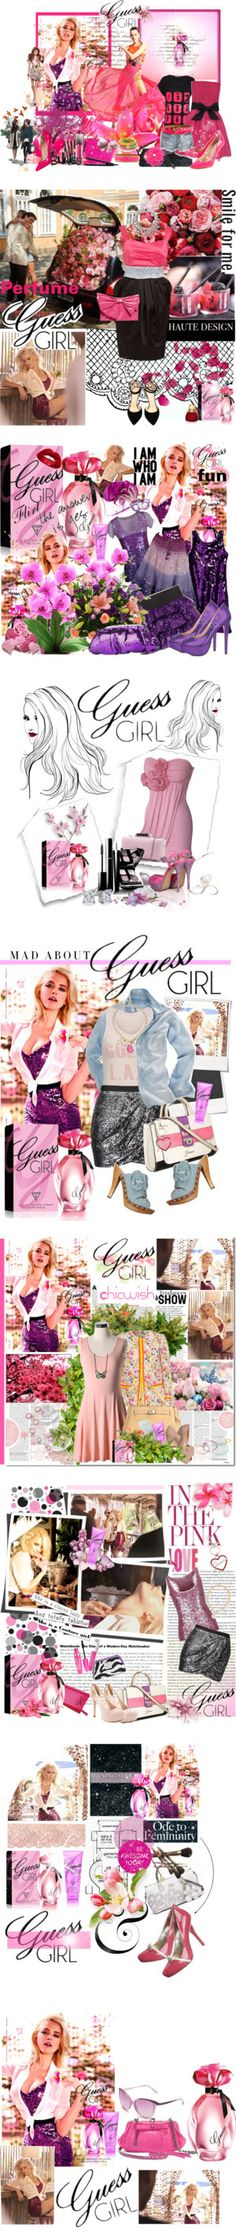 """""""Guess Girl"""" by alicekaur ❤ liked on Polyvore"""